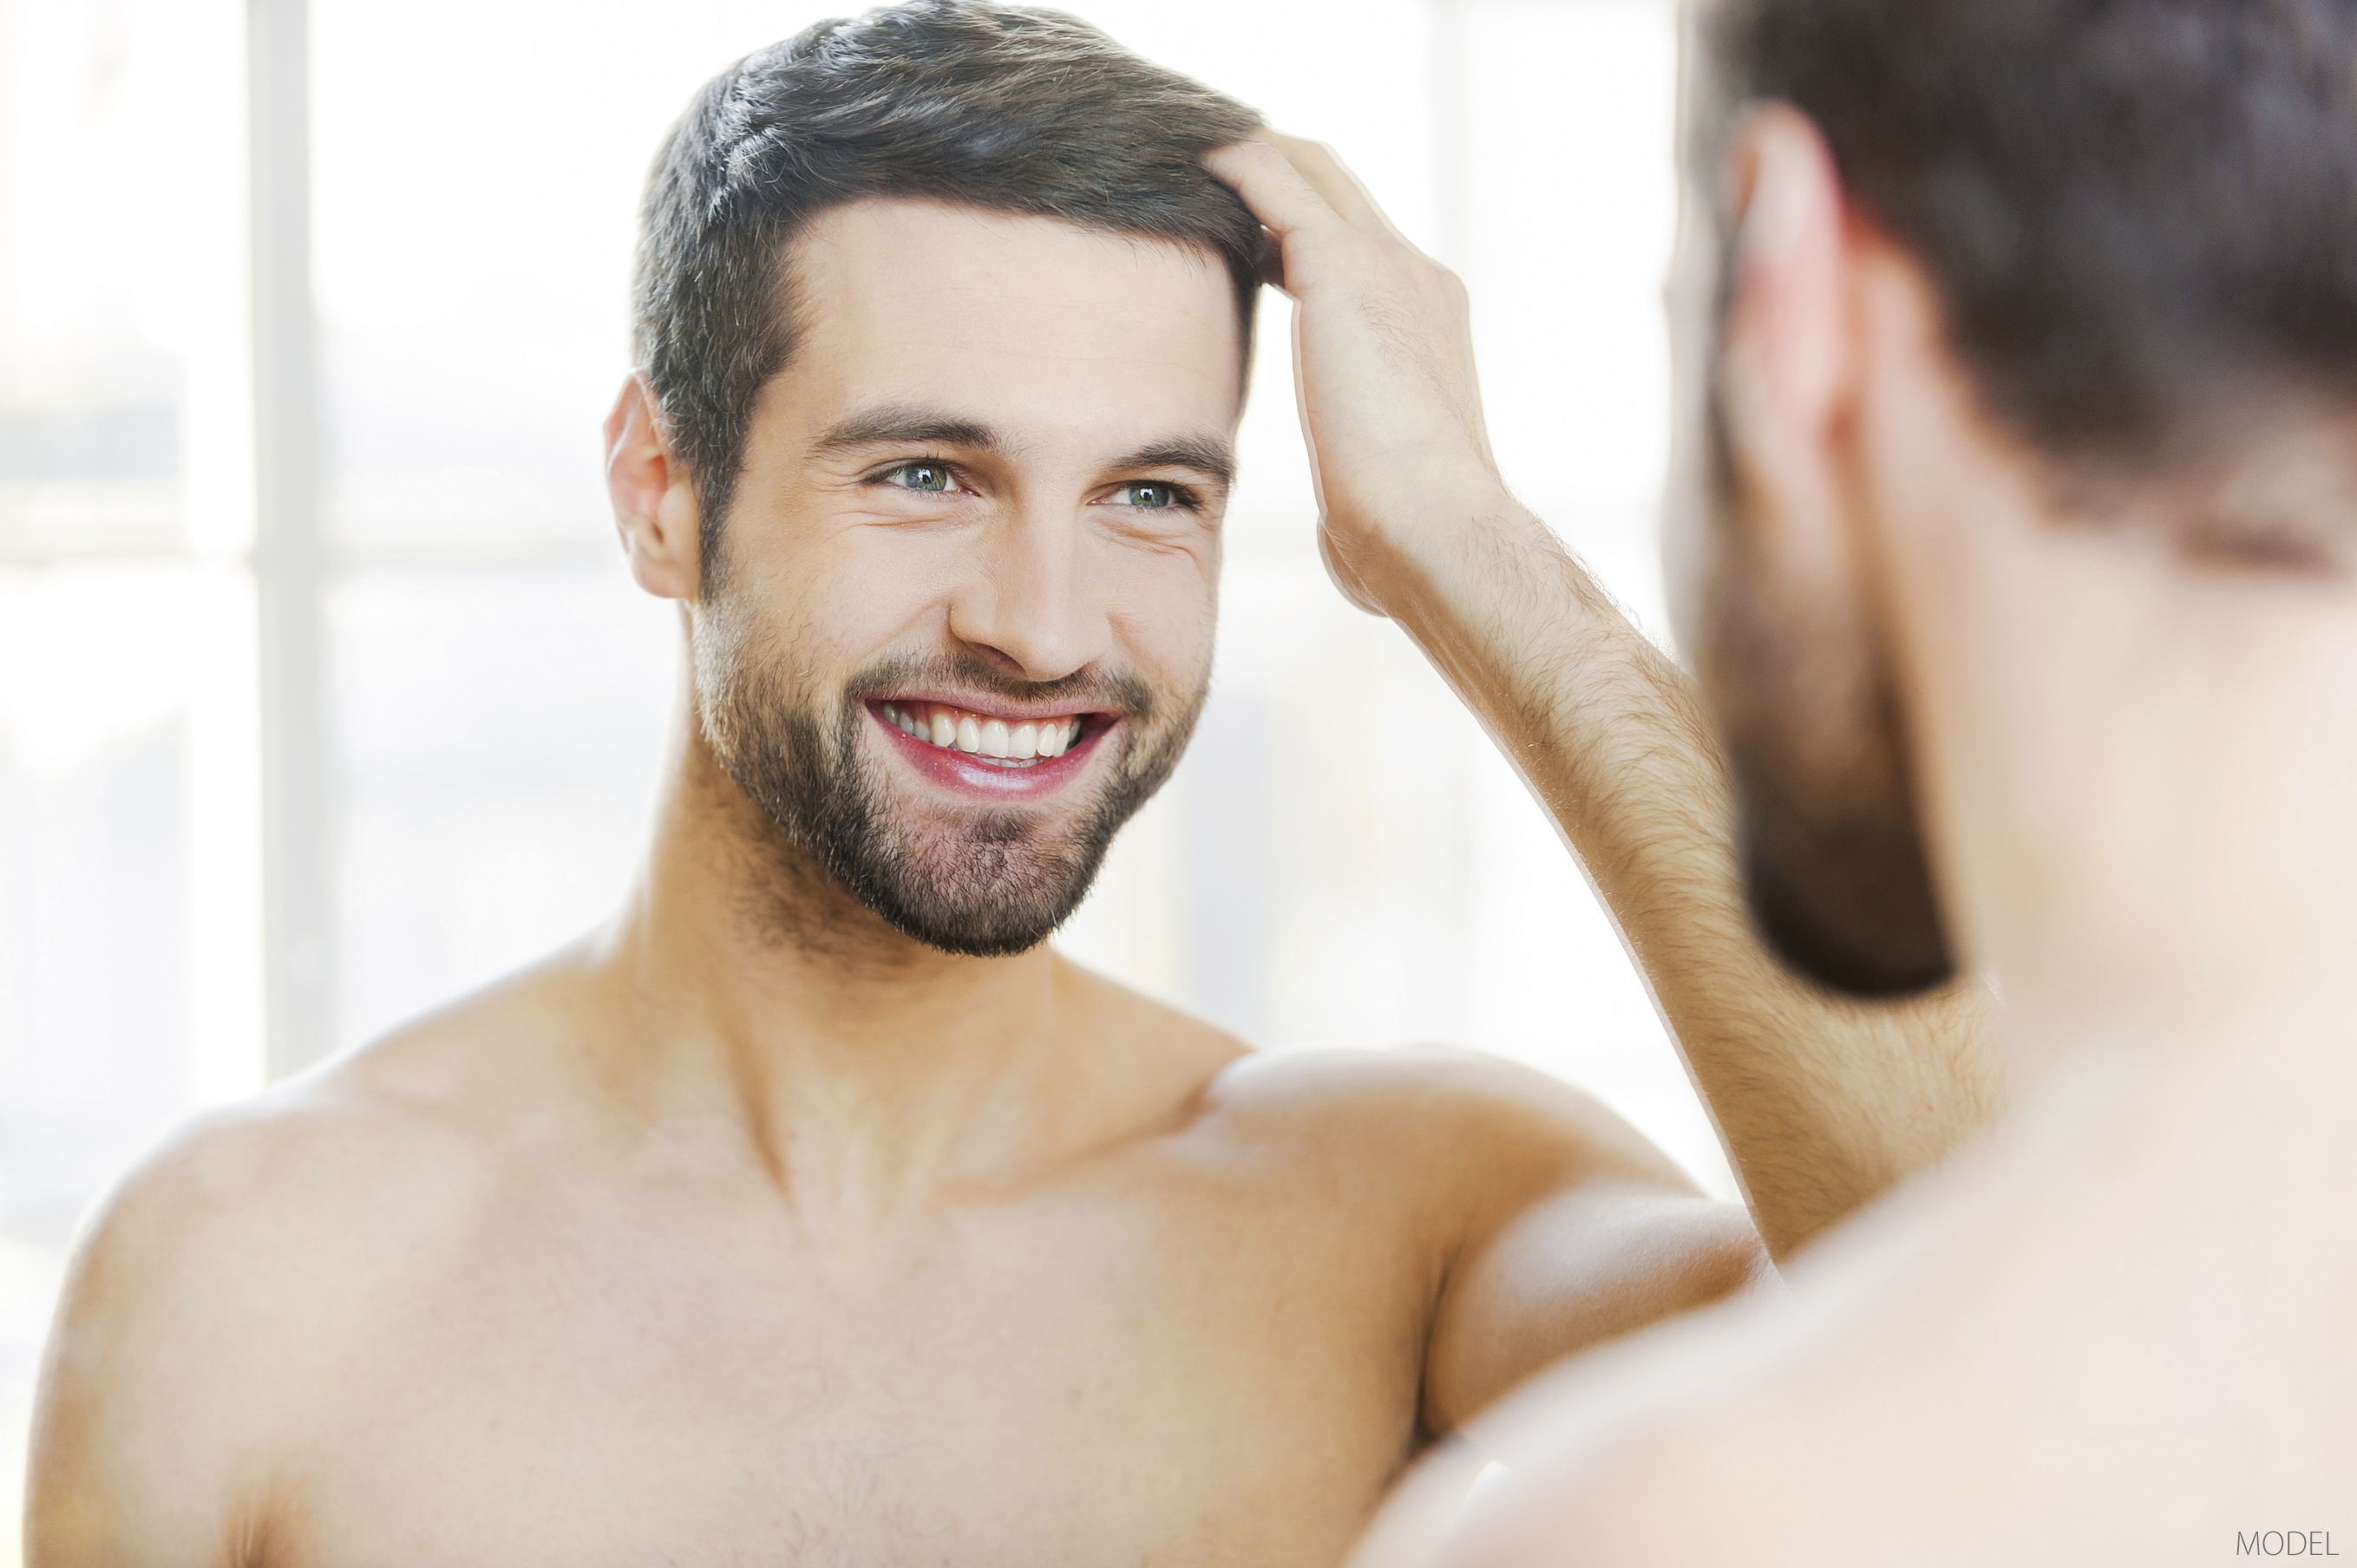 A patient is happy with his hair restoration results